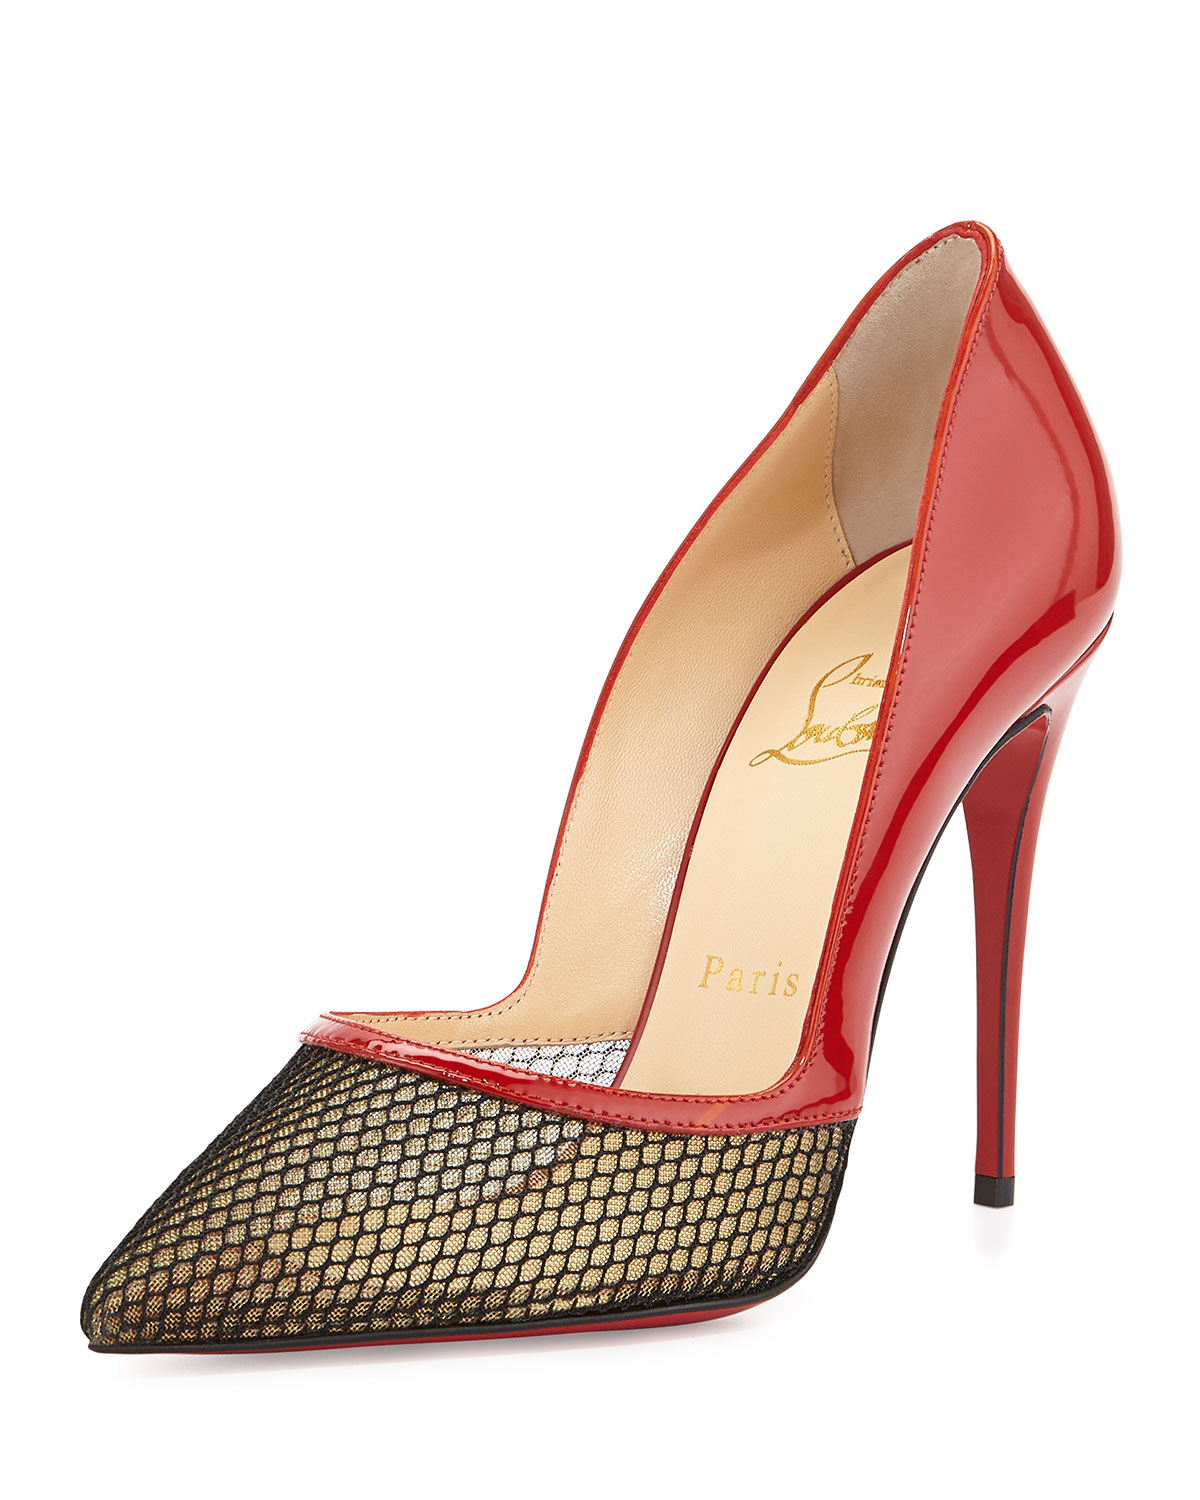 Christian Louboutin Miluna Patent/Fishnet Red Sole Pump, Red